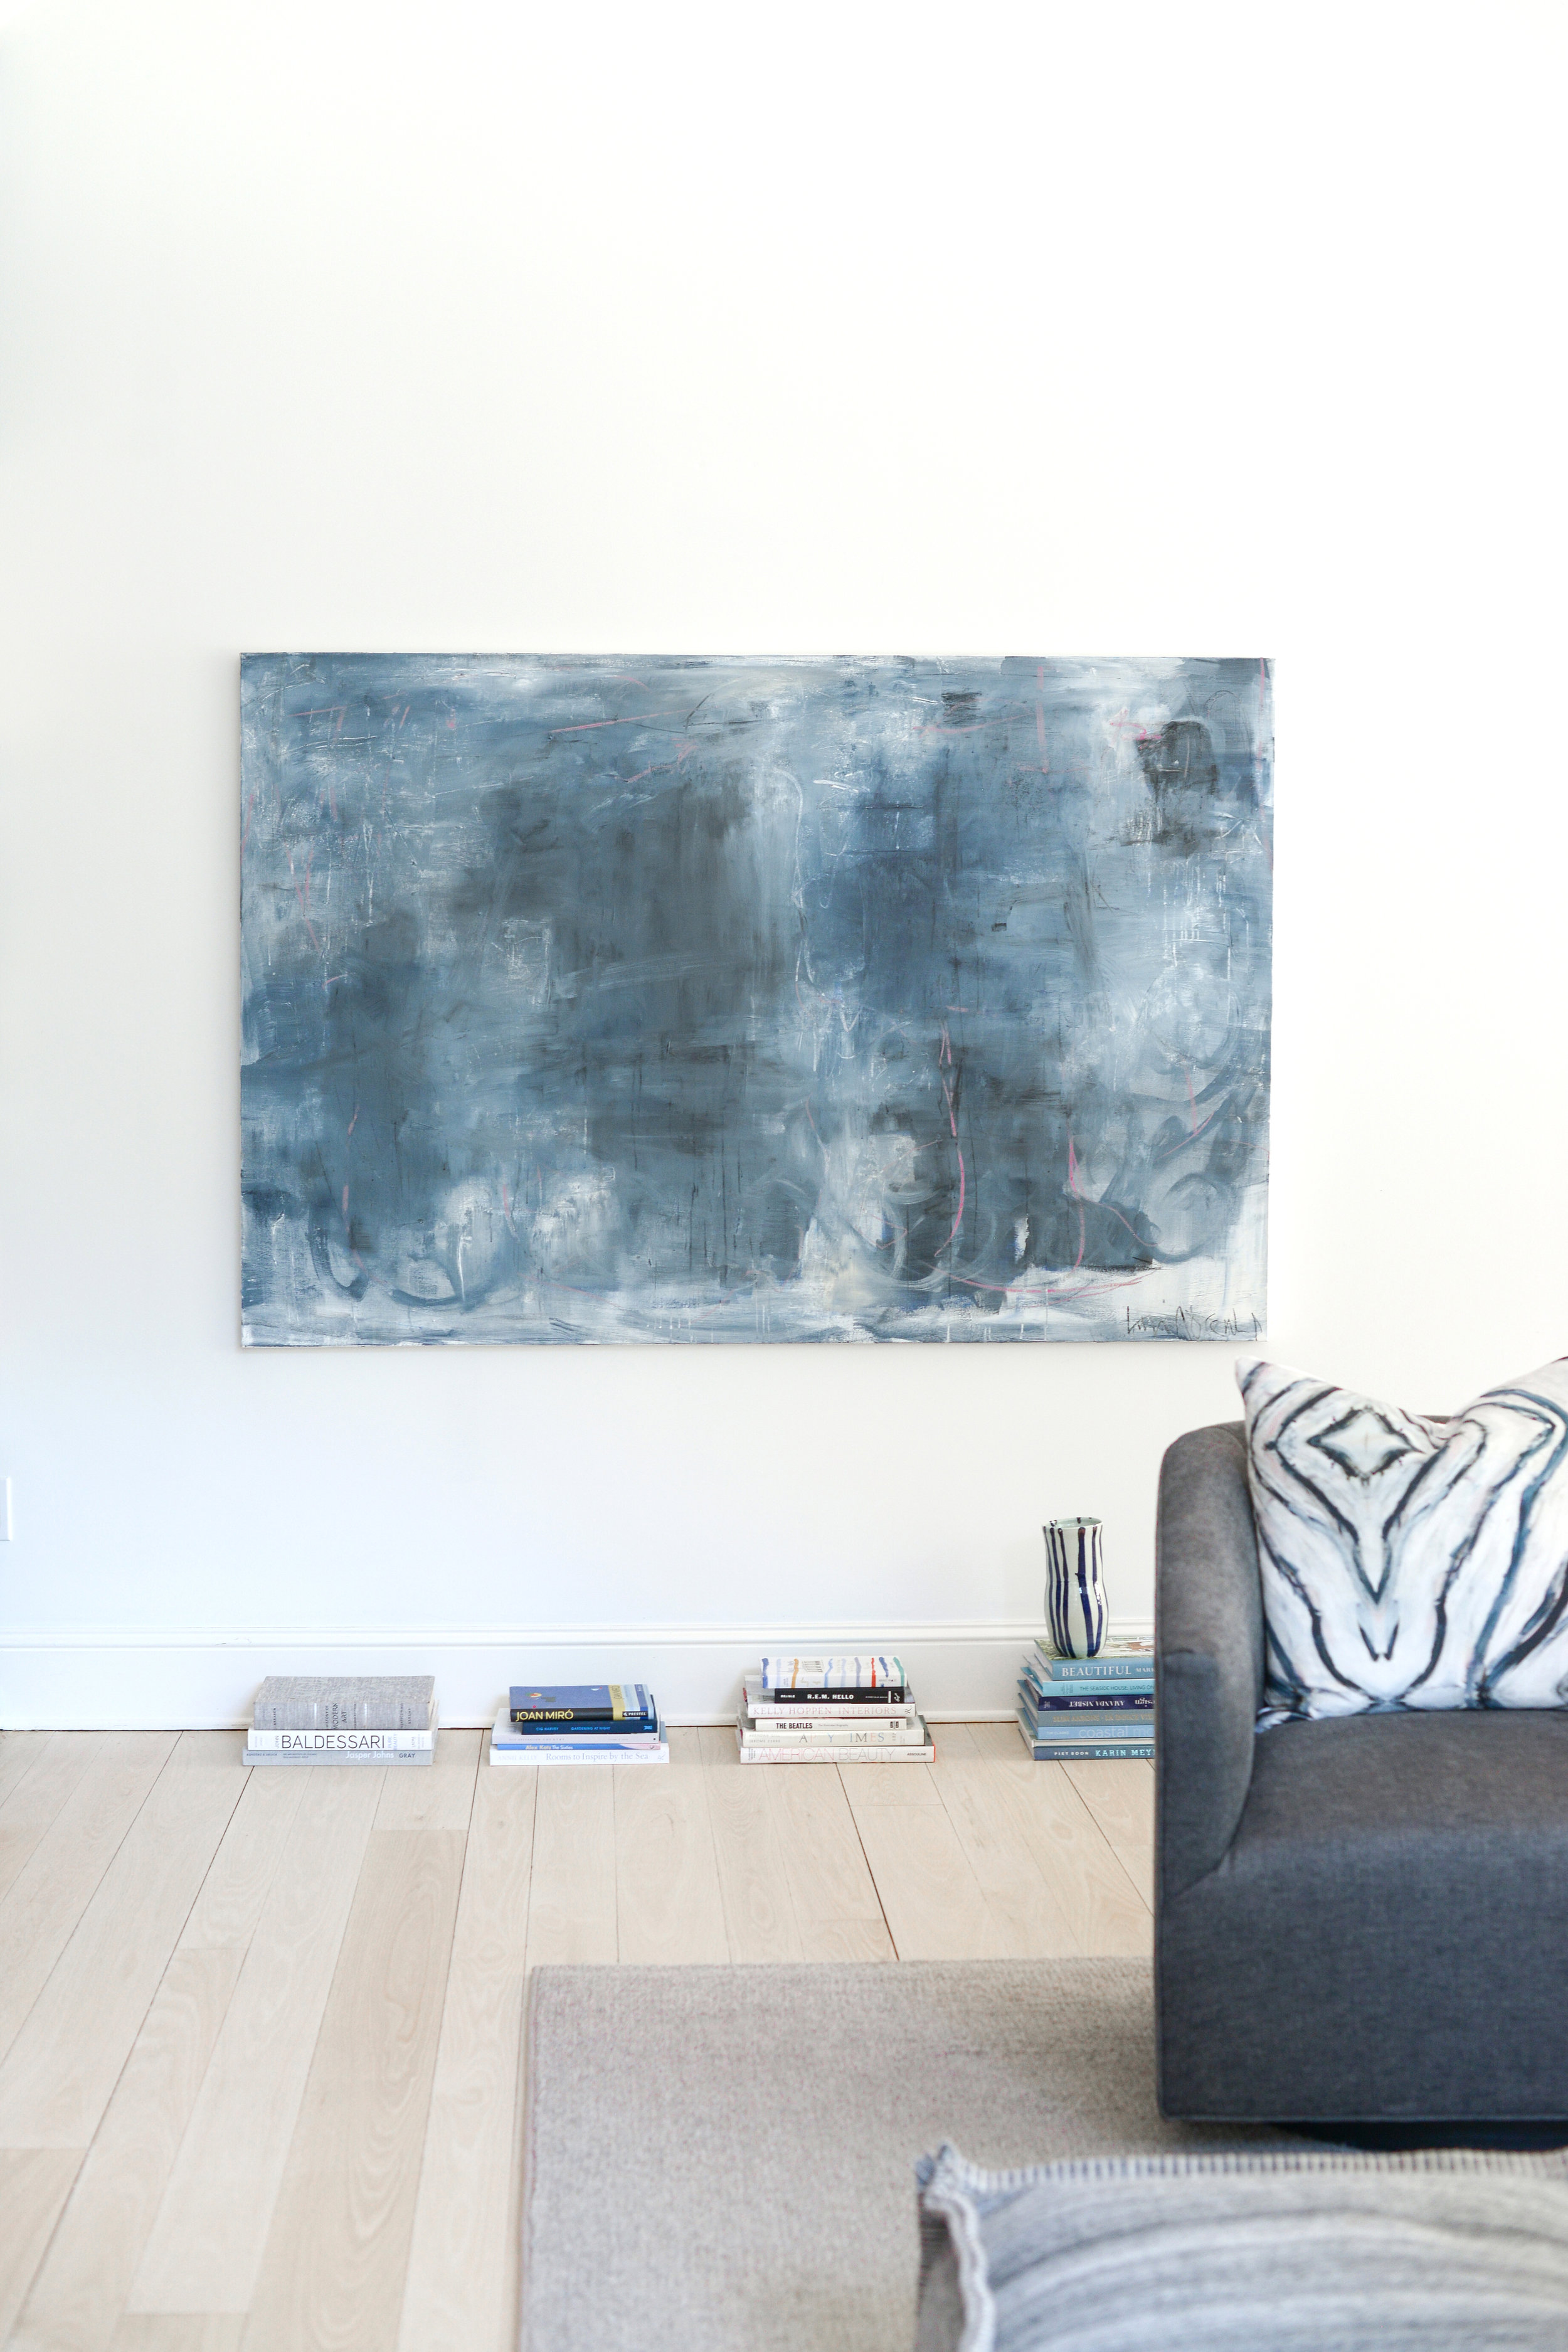 VISIT OUR SHOP +ART GALLERY - ONE SCONSET SQUARE • WESTPORT CT 06880Shop Hours: Monday-Friday 10 to 5pm. Sat. 11-5pm.For more information or to inquire about a painting,please contact art@kerrirosenthal.comor call us at (203) 557 6800.